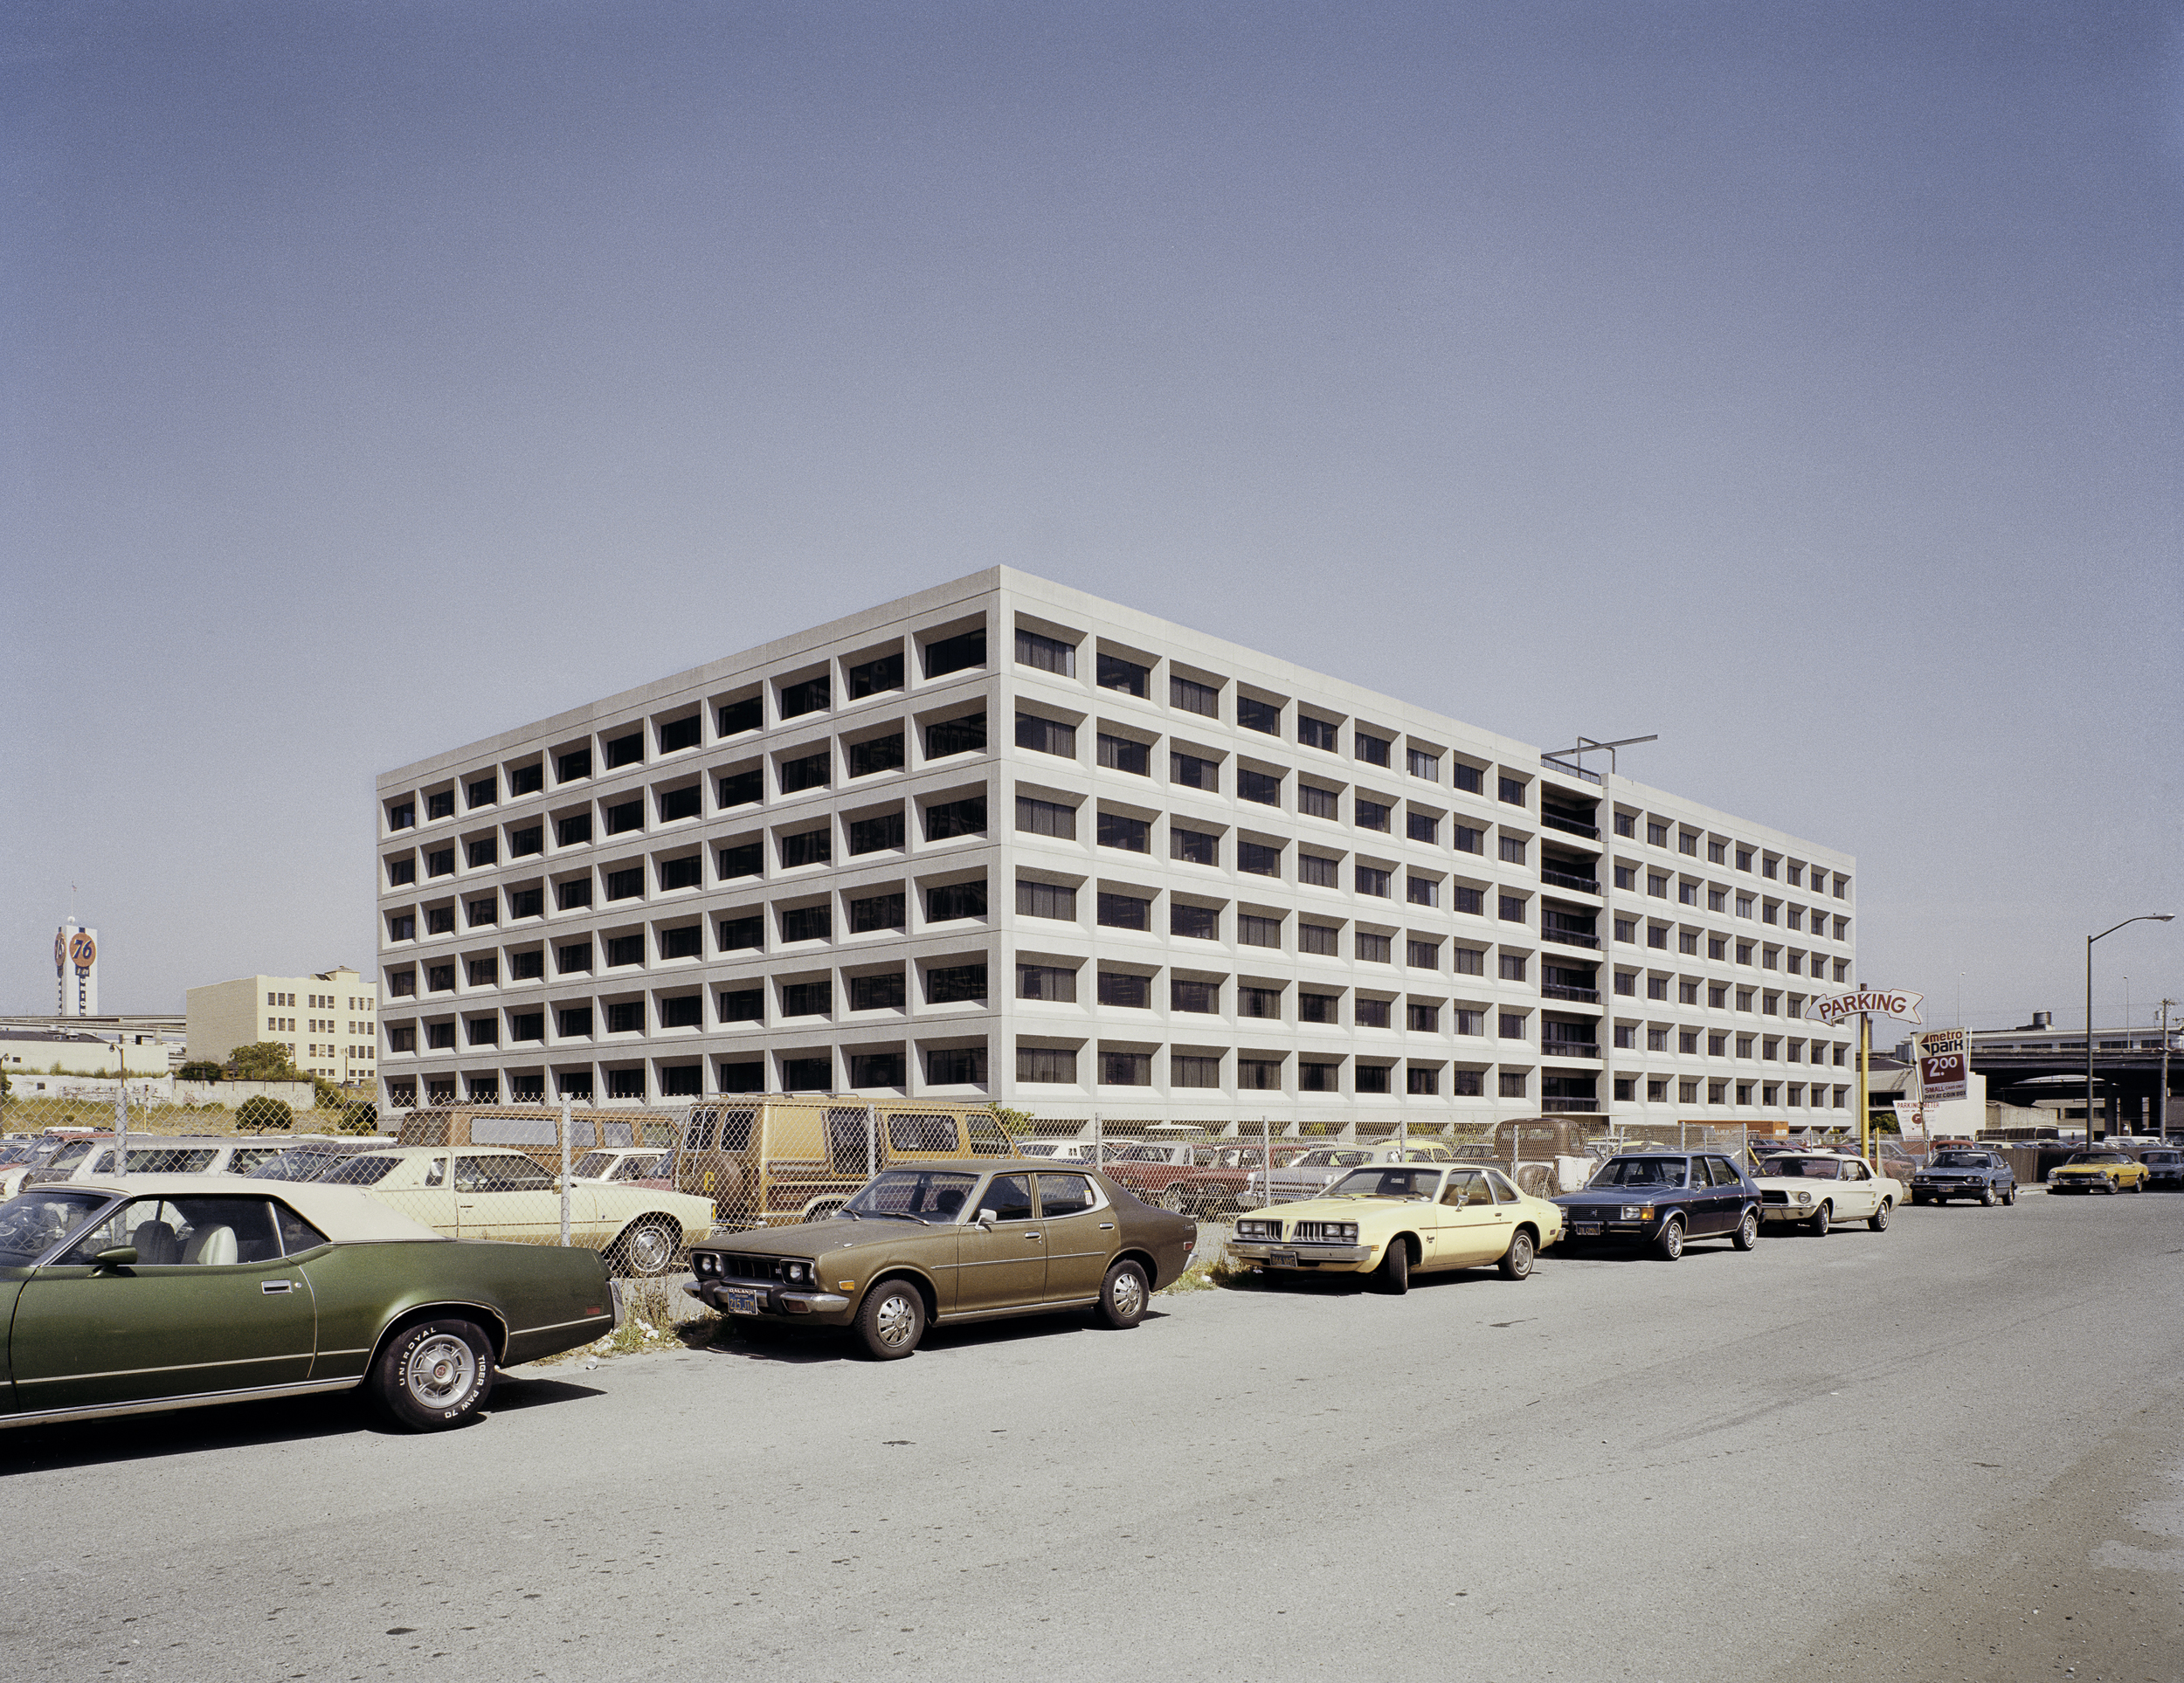 JANET DELANEY First Office Building in redevelopment zone, Lapu- Lapu Street, 1980 Archival Pigment Print, 2016  VAILABLE SIZES 16 x 20 inches, edition of 5 20 x 24 inches, edition of 2 30 x 40 inches, edition of 2